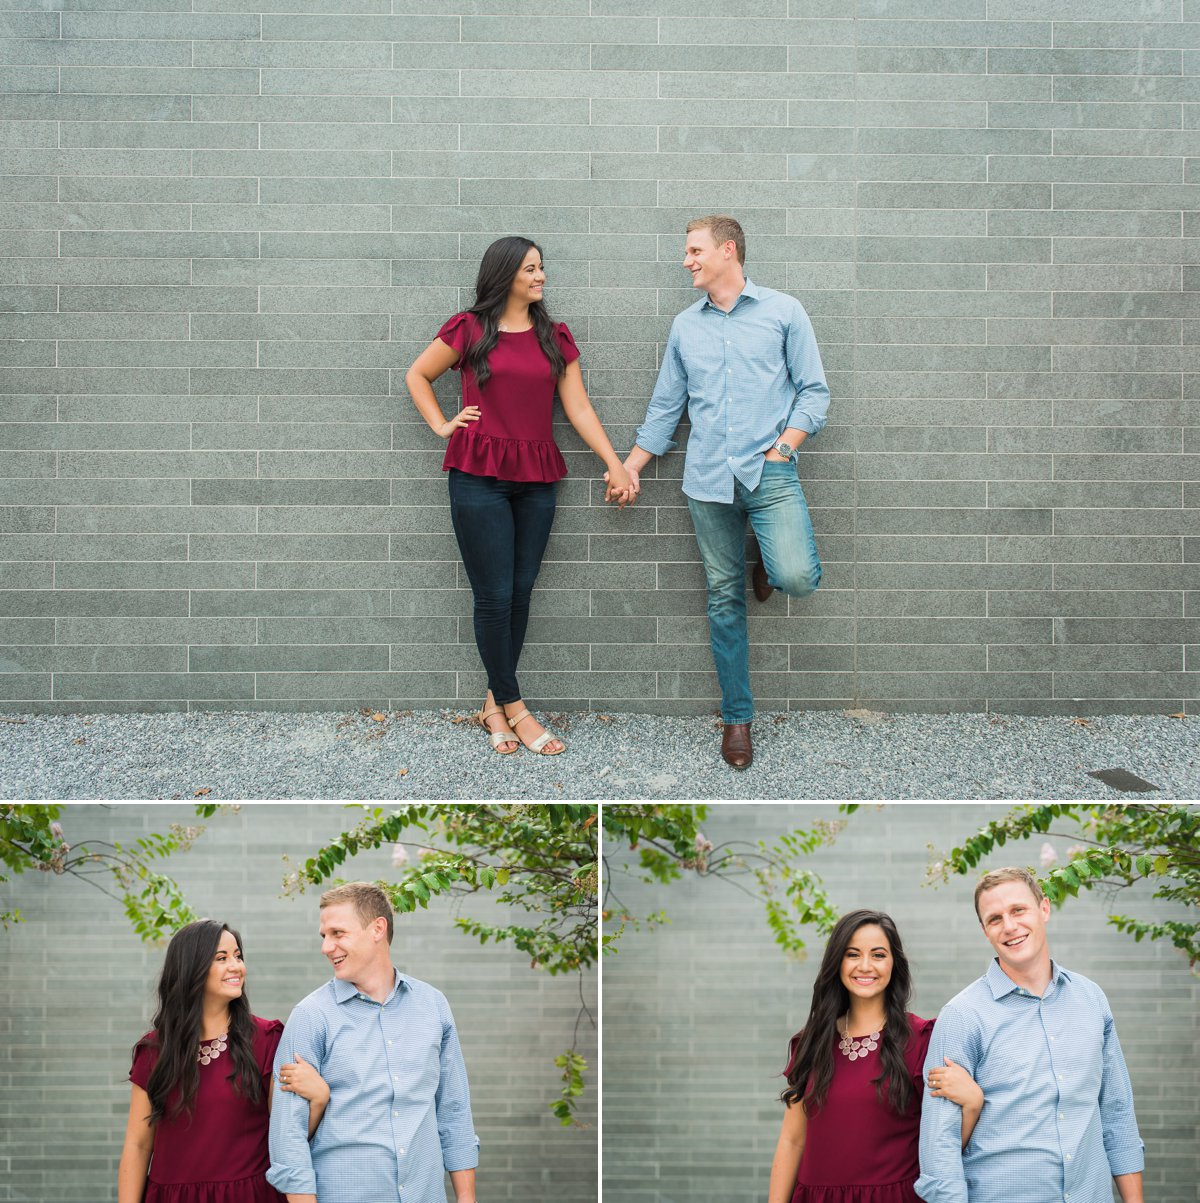 Aubrey-Chris Houston Engagement Photo by Nate Messarra